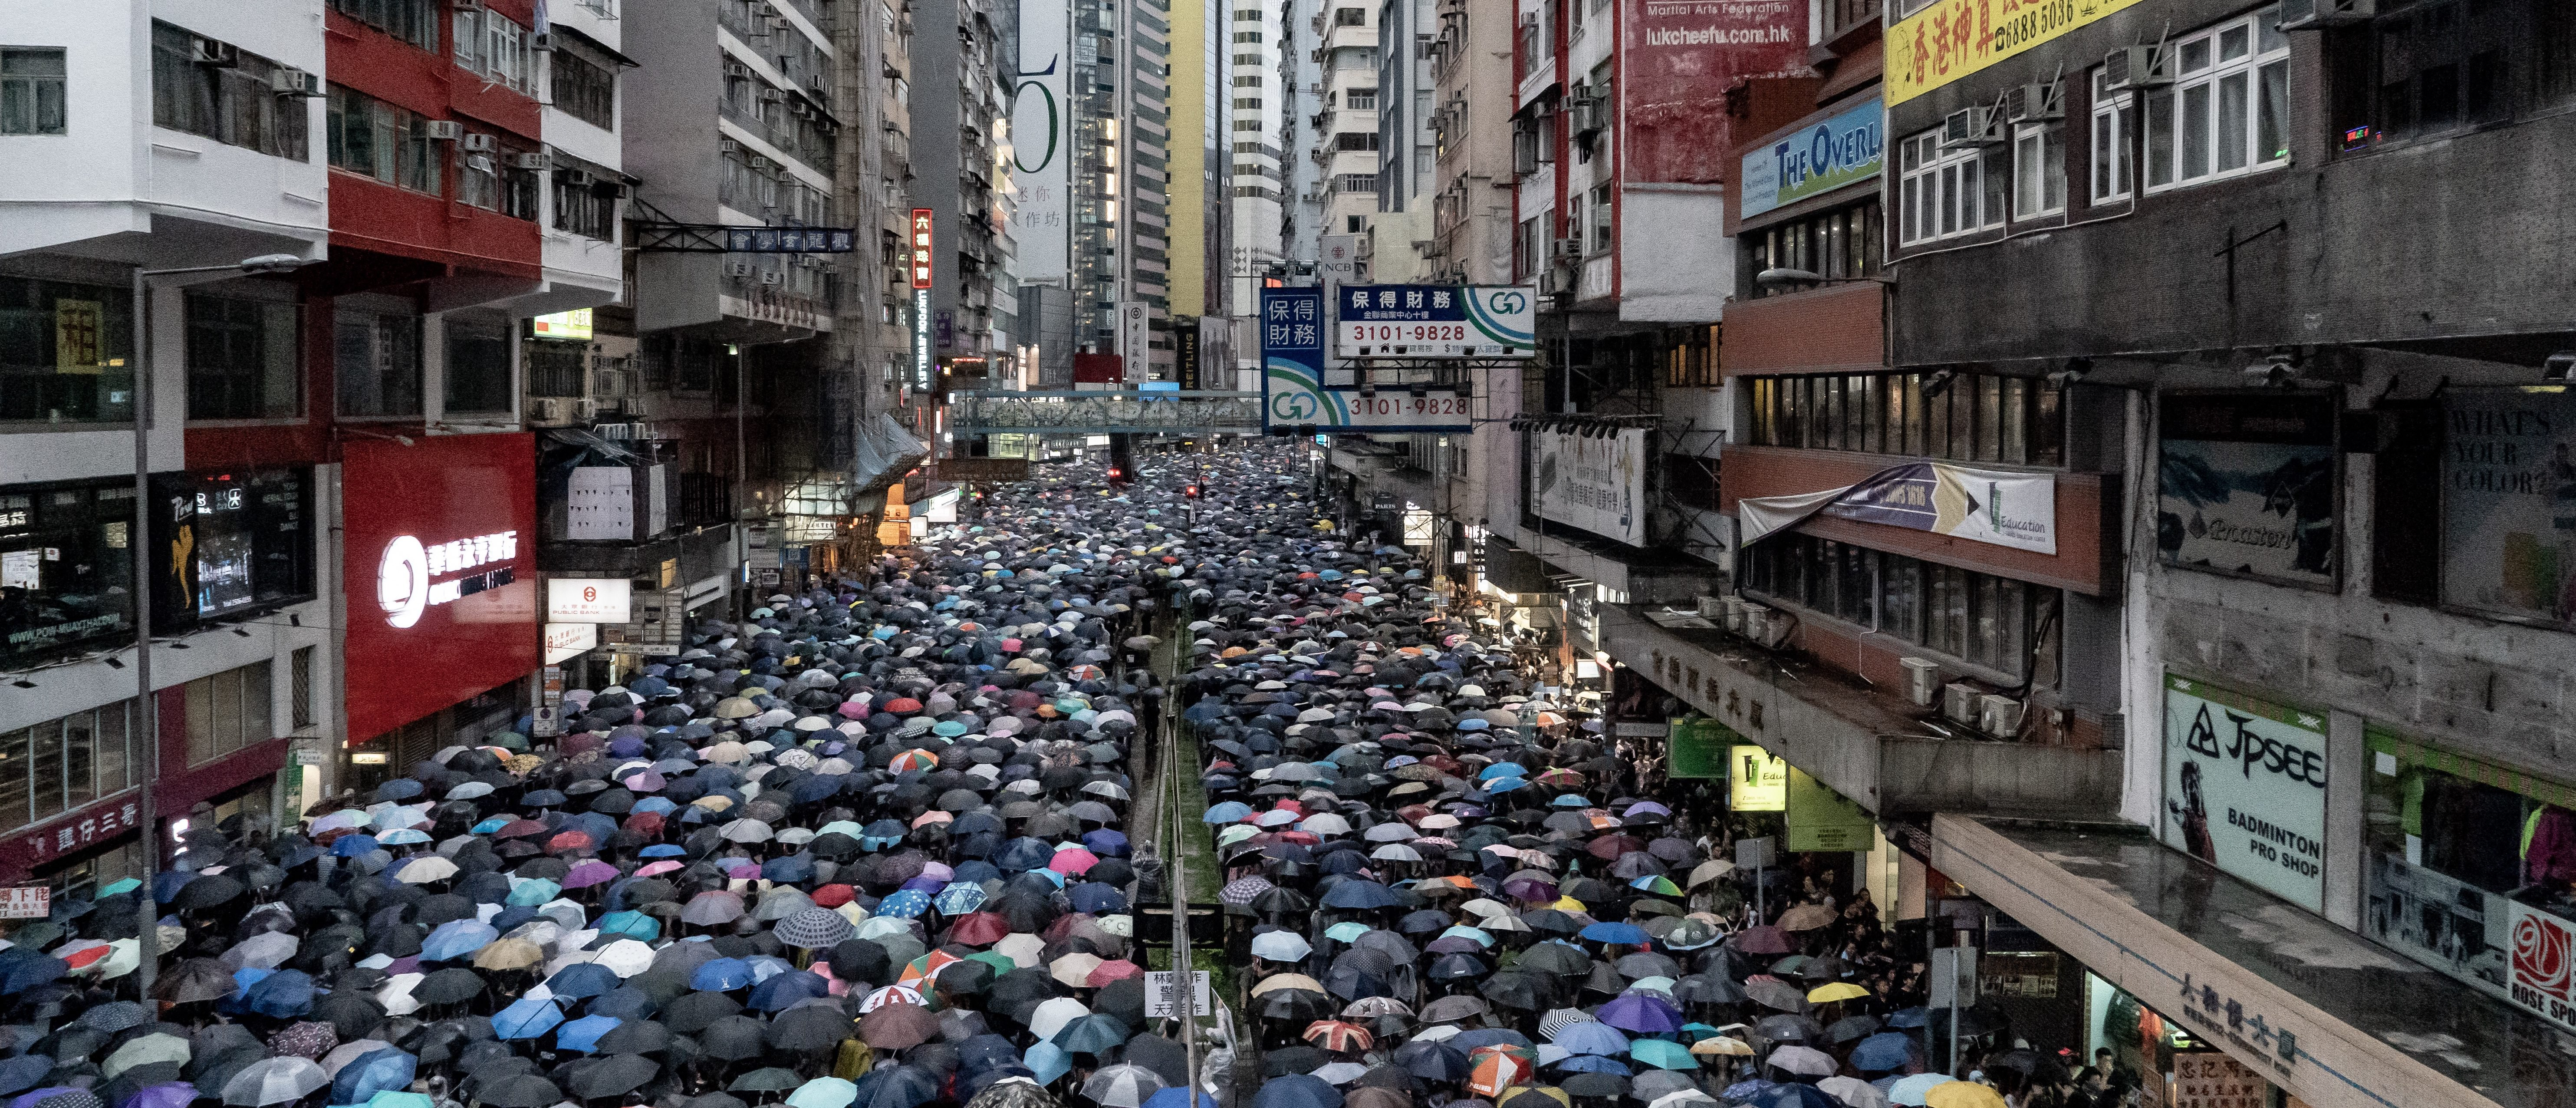 Hong Kong Demonstration Draws Crowd Of More Than 1.7 Million Against Government Orders | The Daily Caller